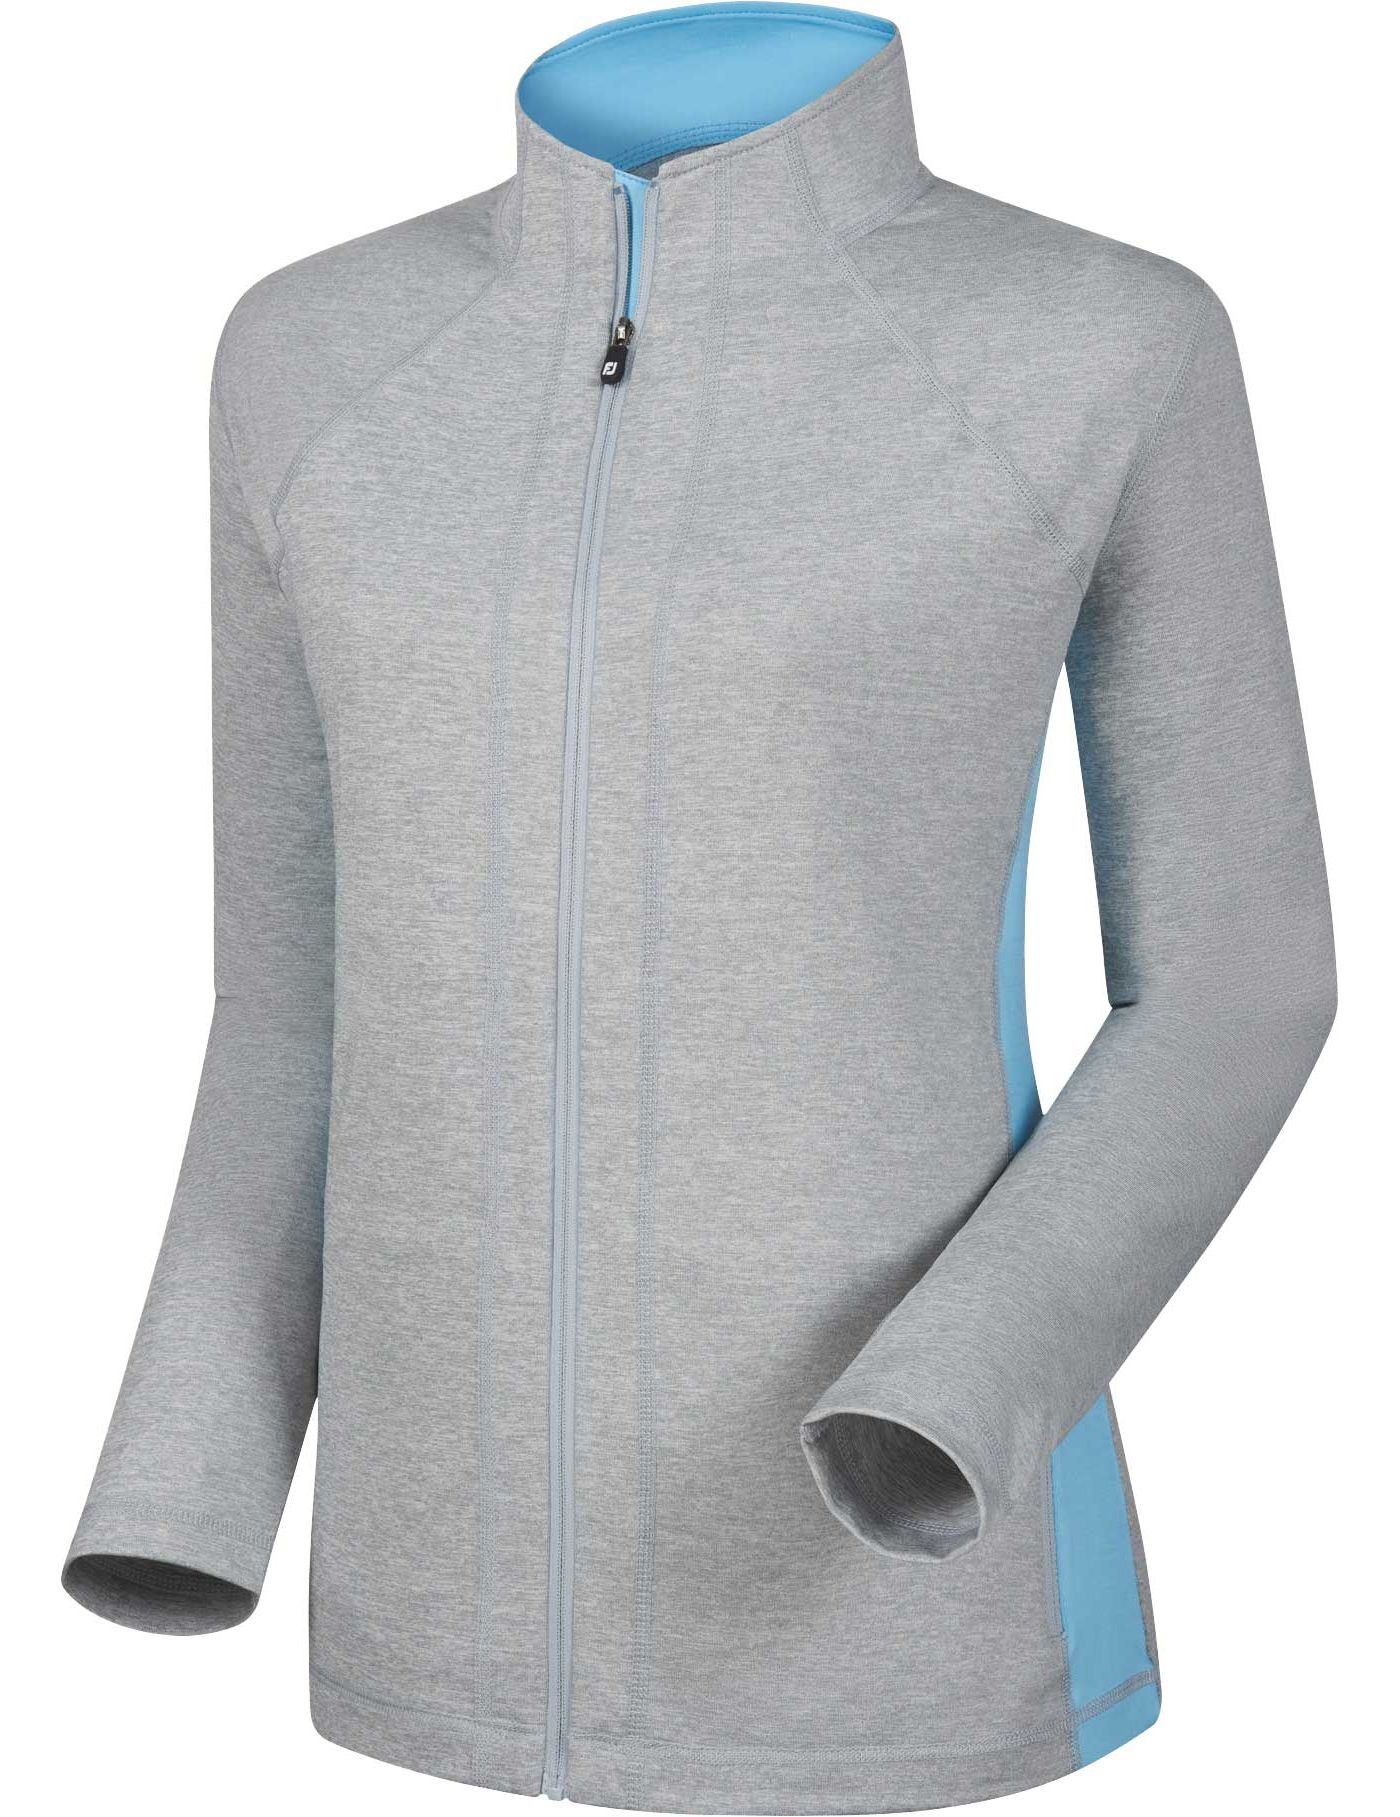 FootJoy Women's Full-Zip Performance Mid Layer Golf Jacket